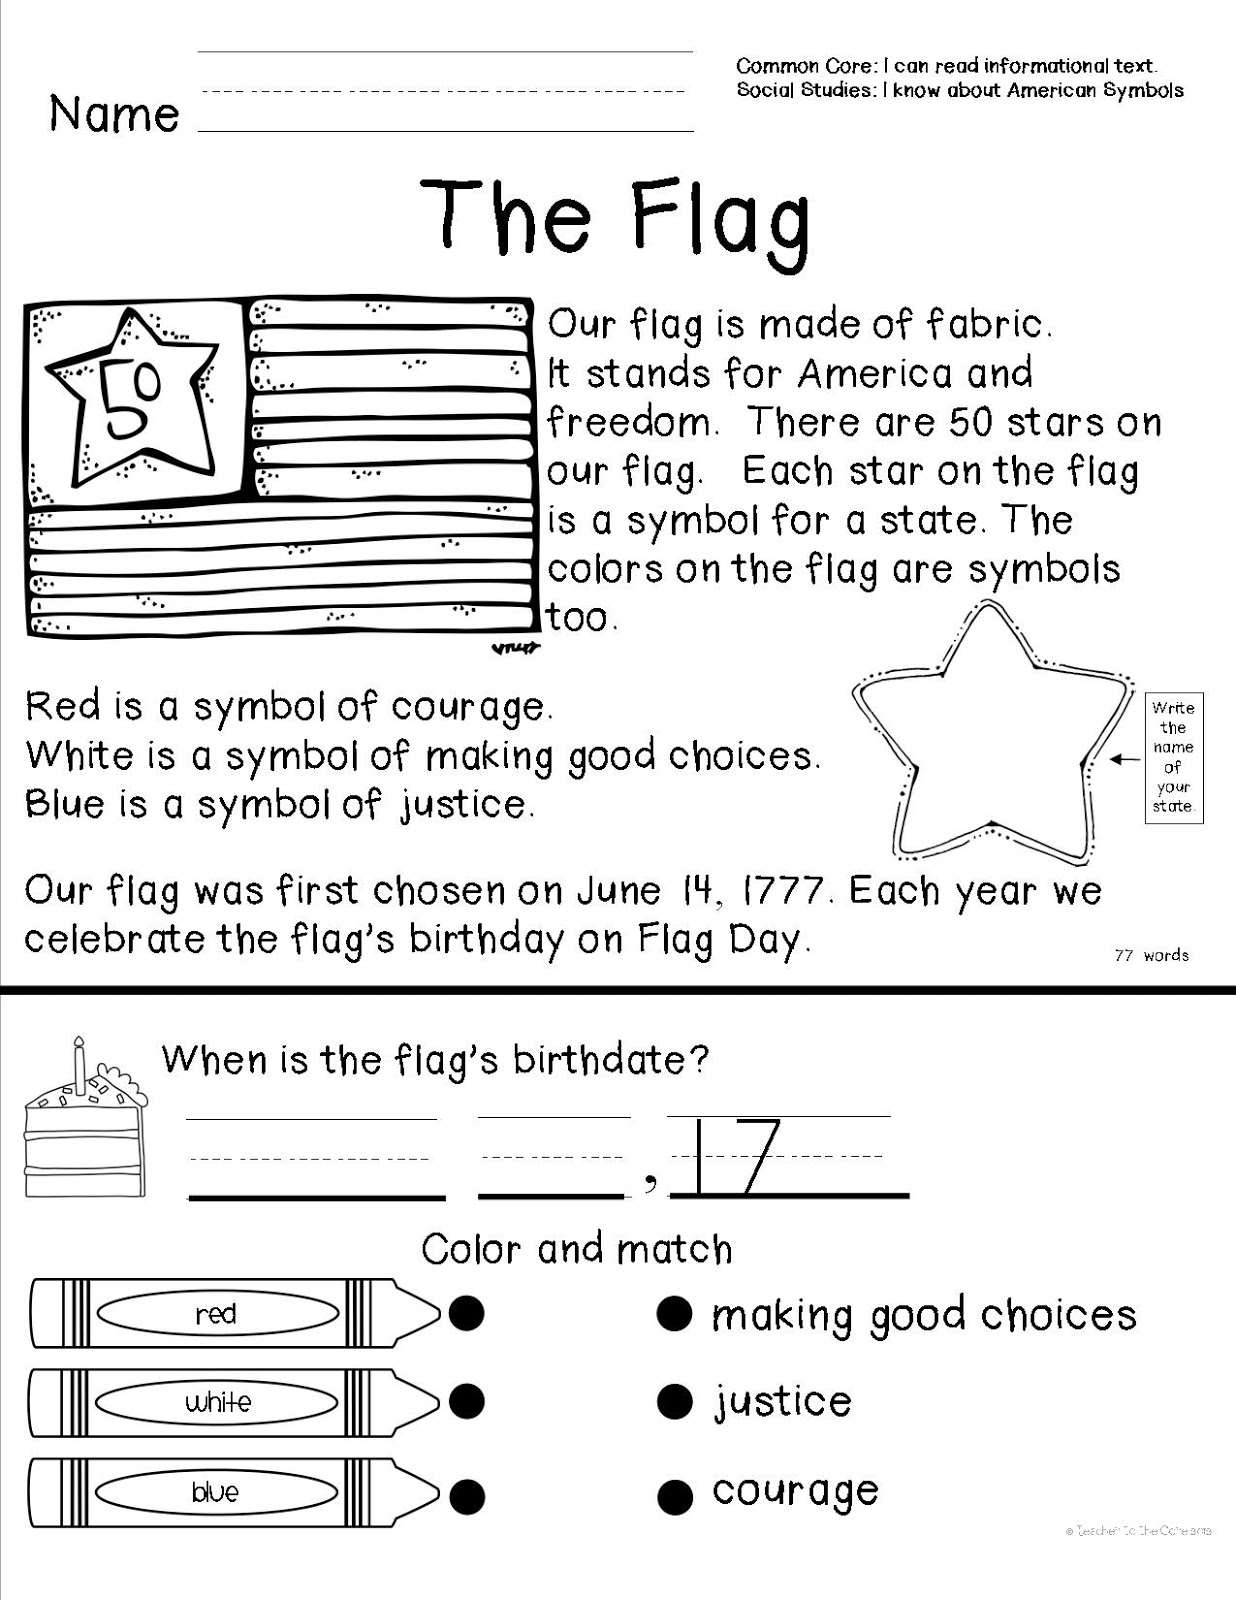 Sly image with regard to flag day printable activities